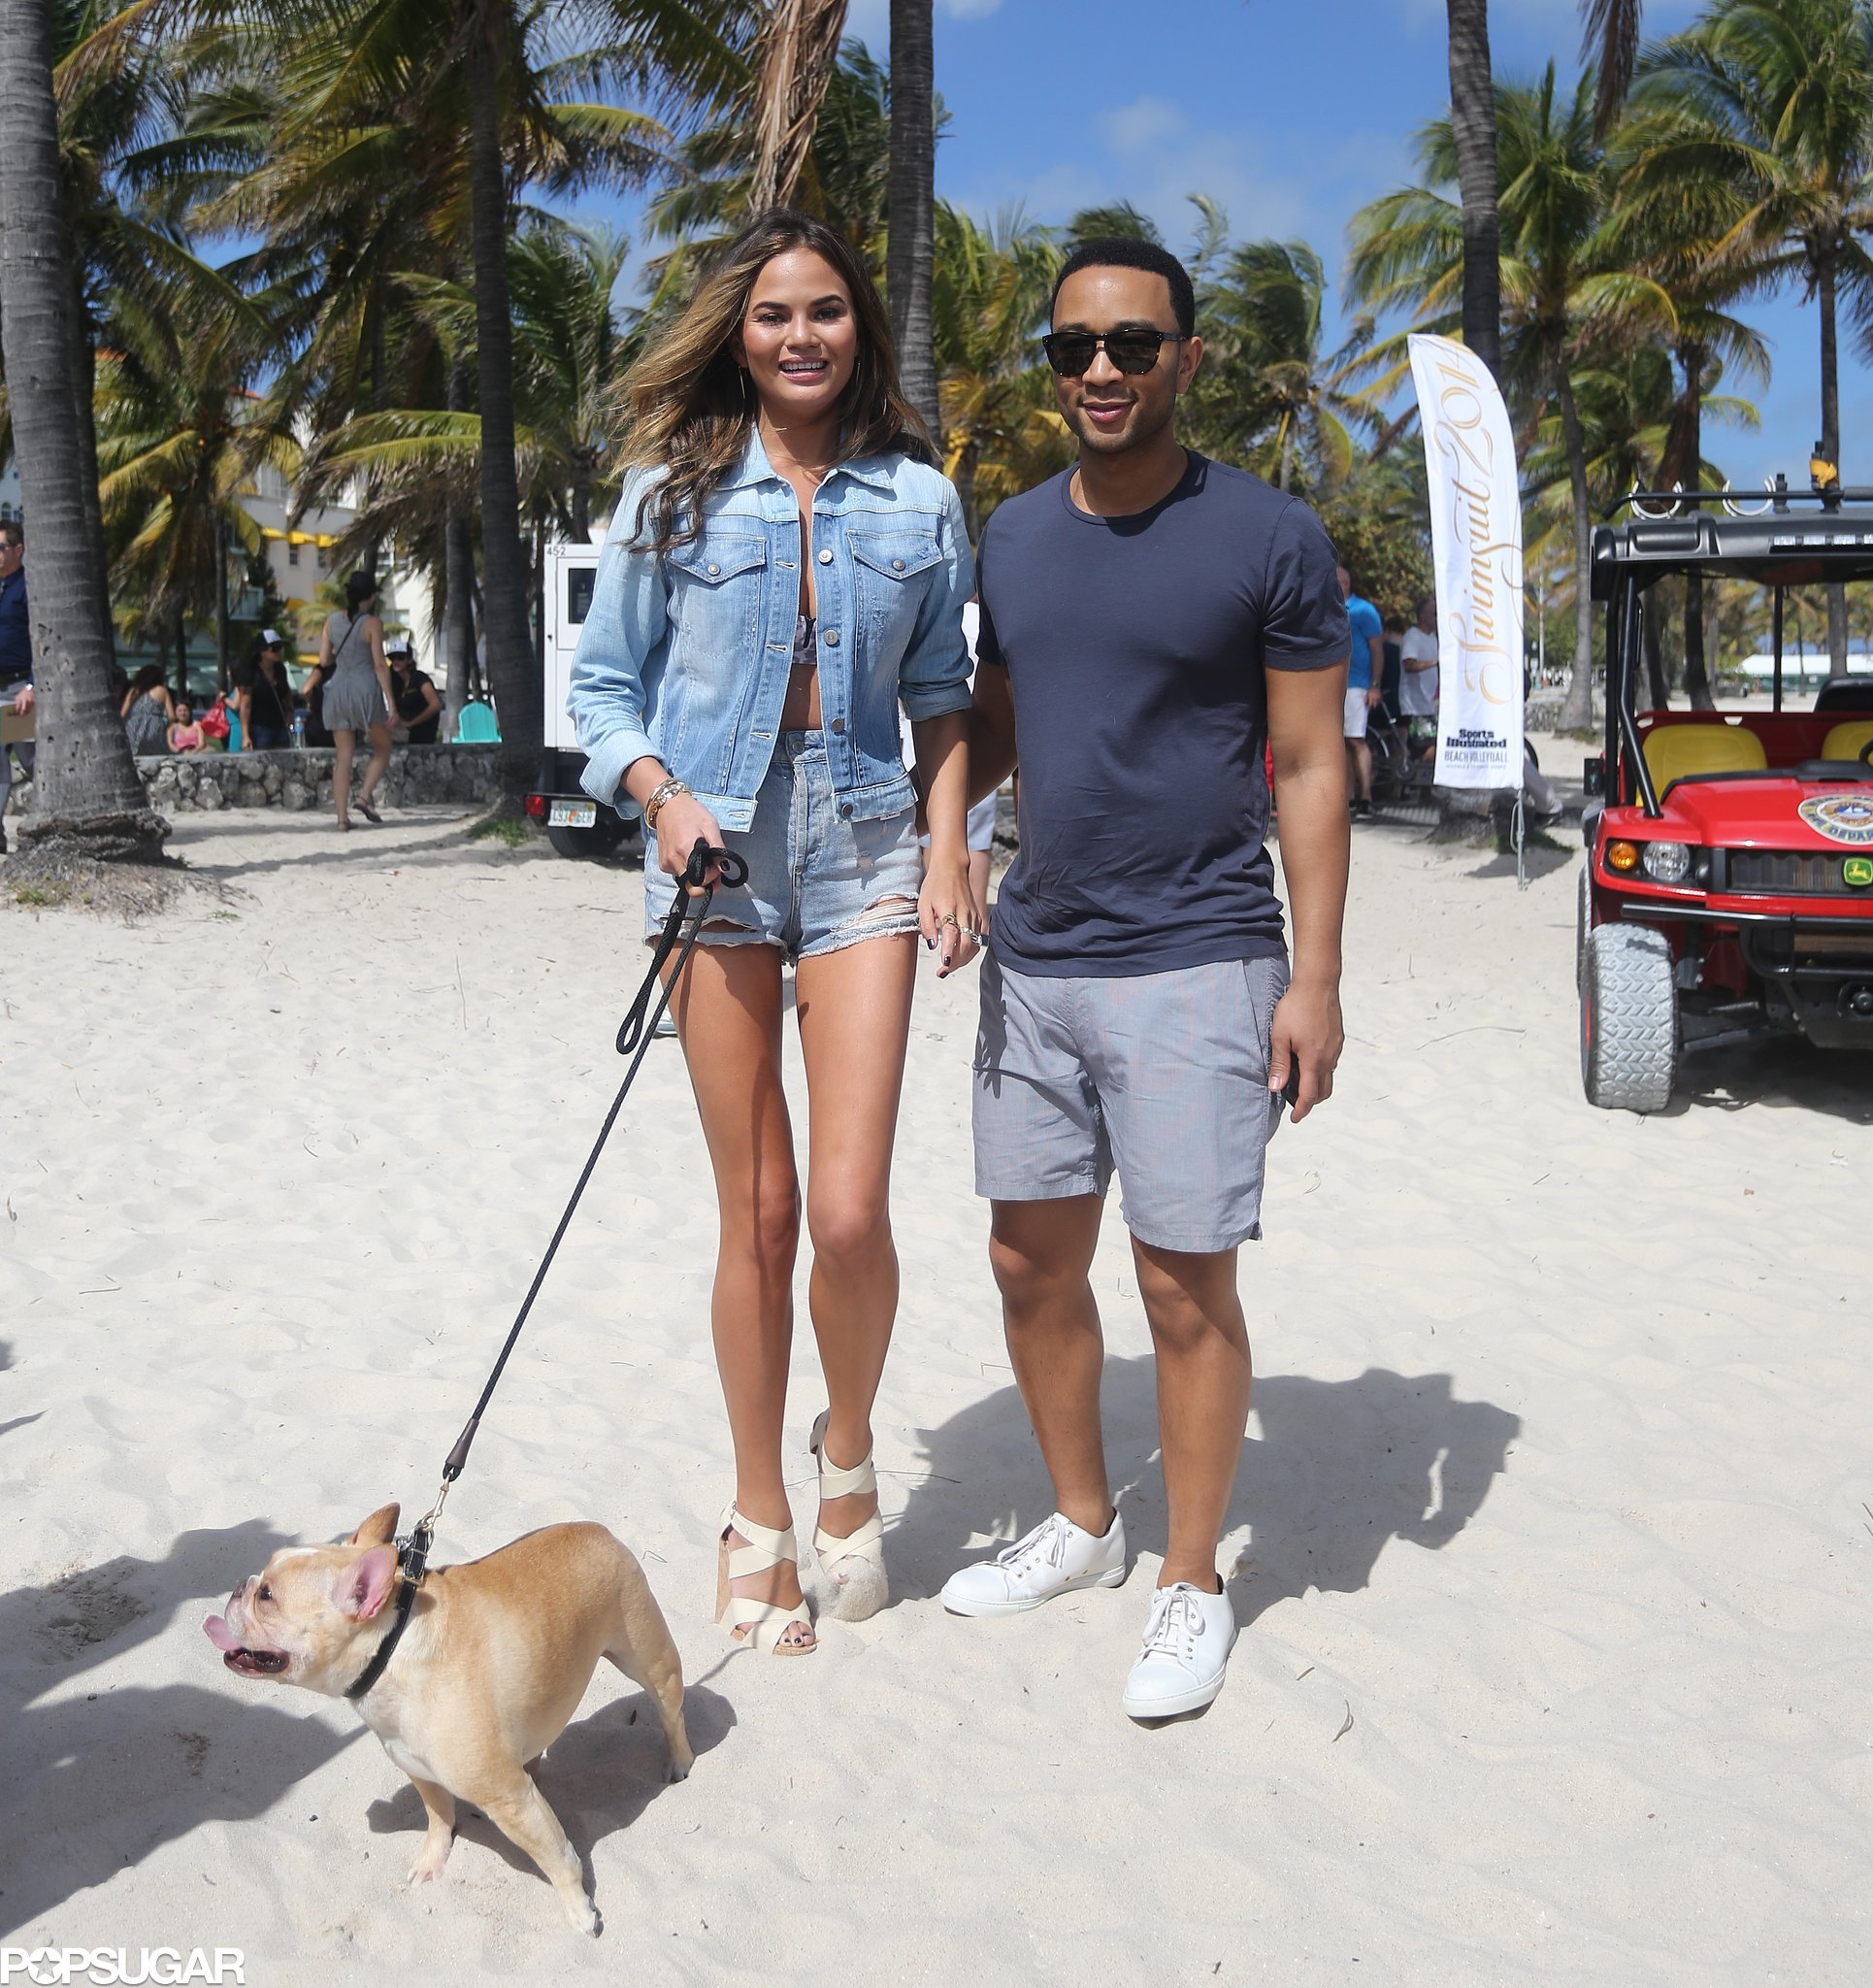 Chrissy Teigen and John Legend took their dog for a walk on the beach ...